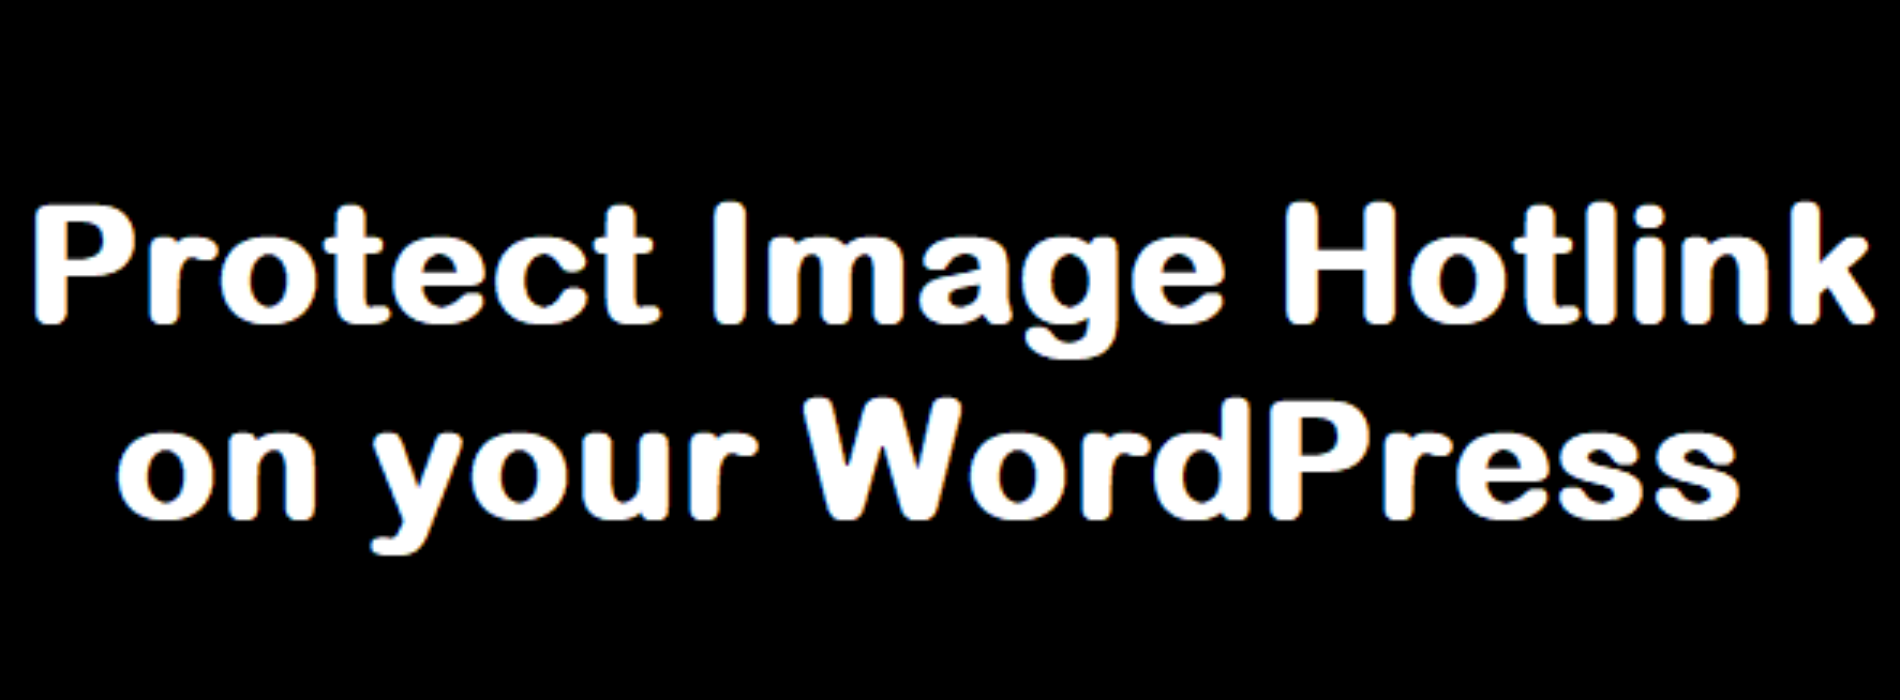 How to protect images from hotlink or being copied